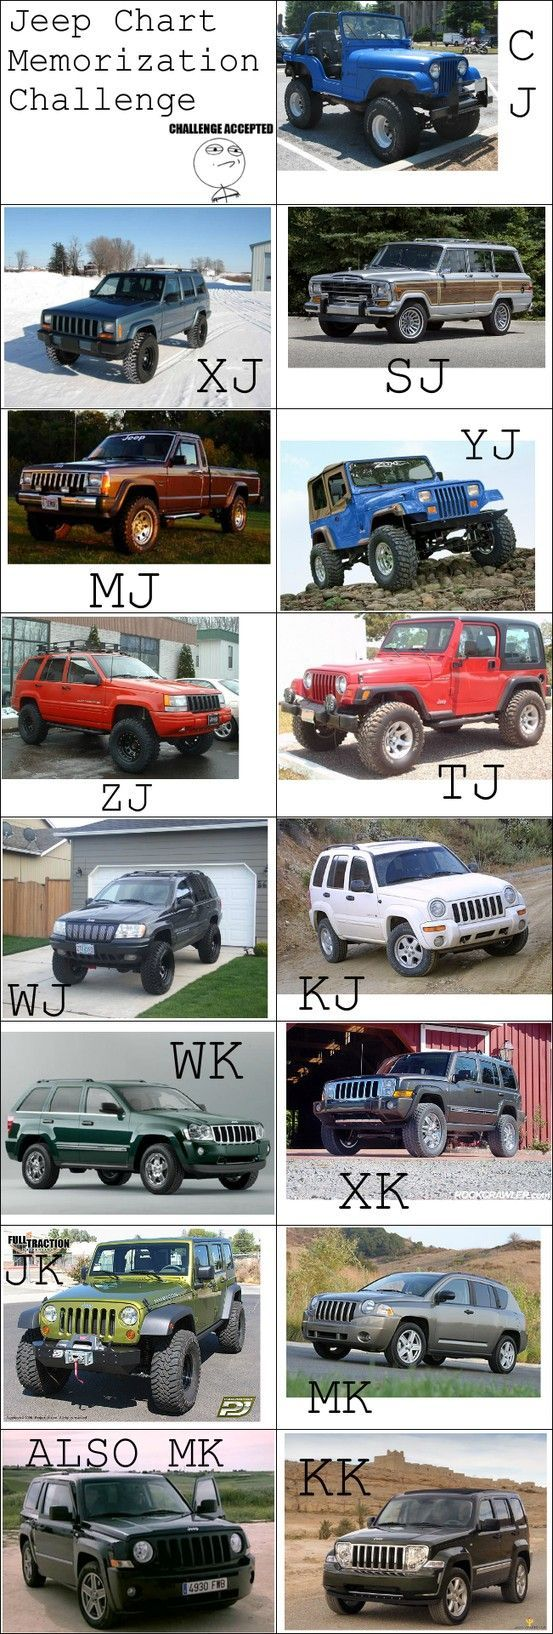 Pin By Rod Berger On Jeeps Pinterest Jeep Jeep Life And Cars